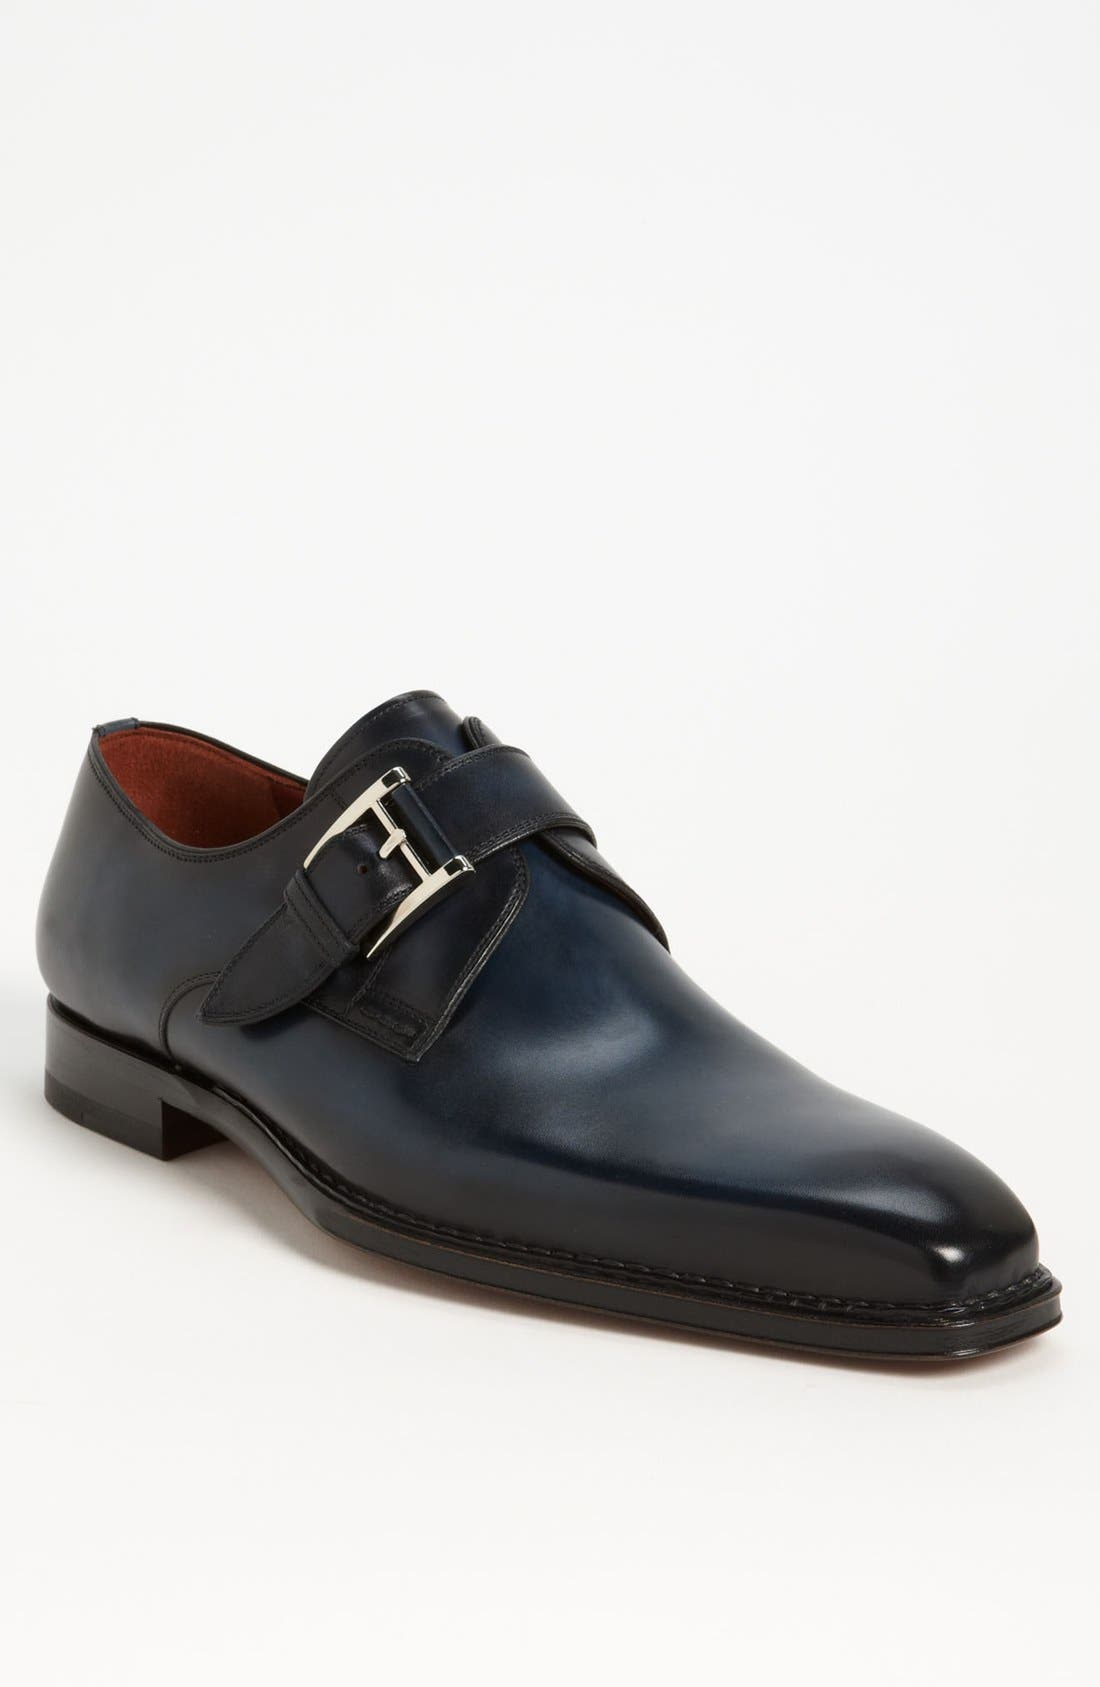 Main Image - Magnanni 'Seleccion - Torres' Monk Strap Slip-On